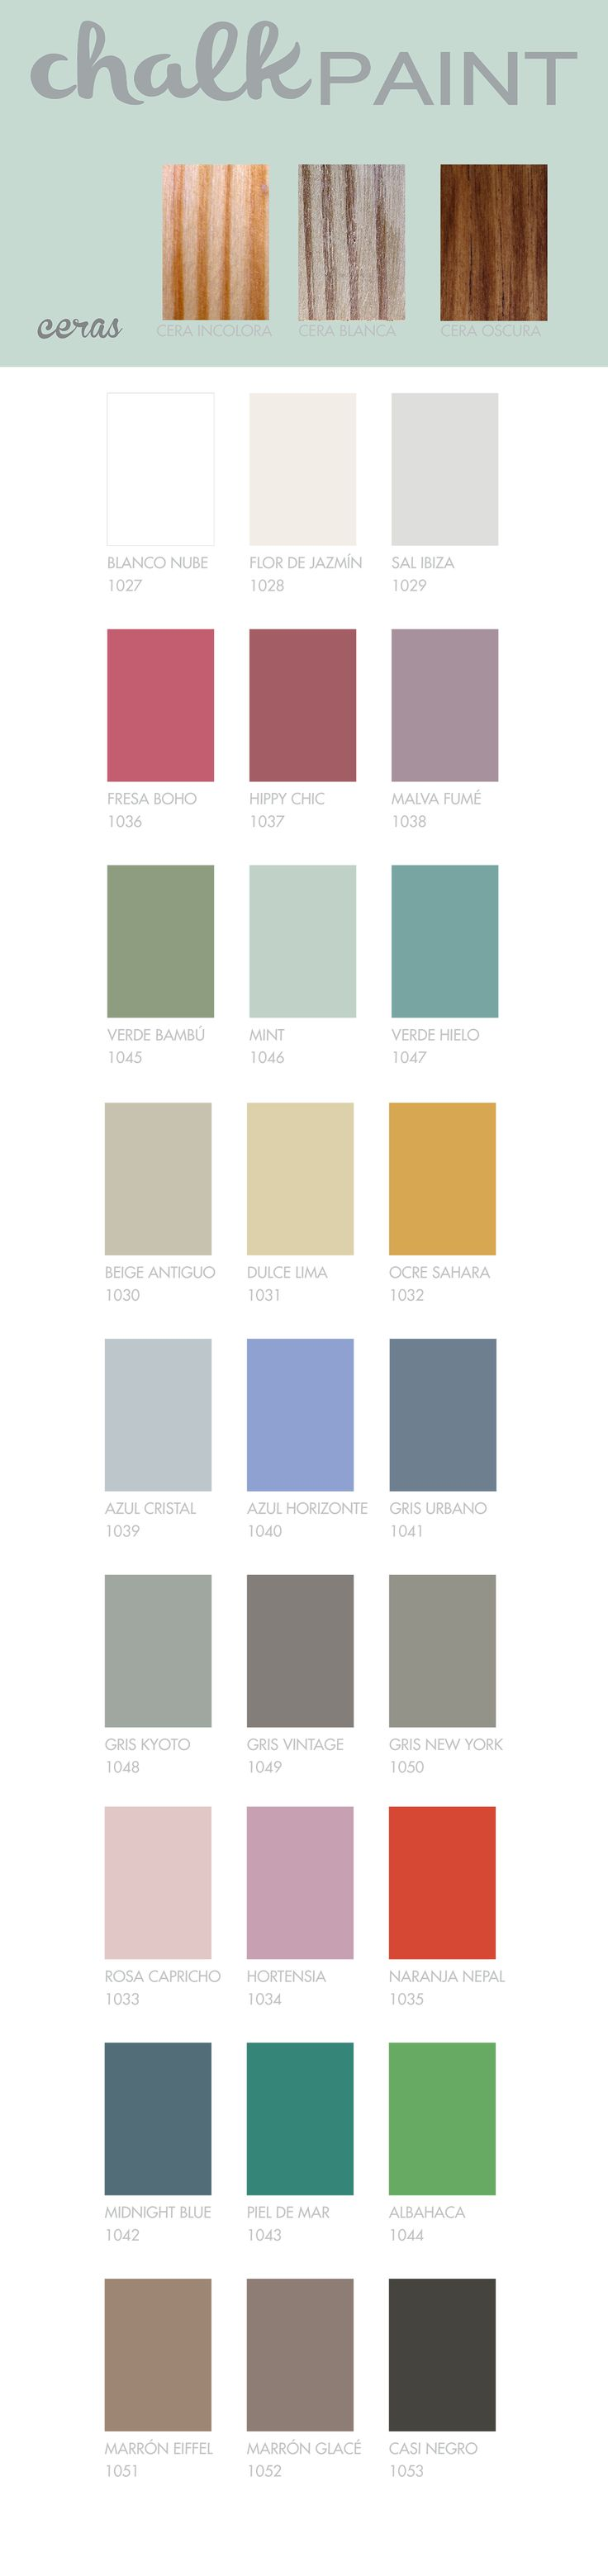 carta de colores chalk paint la pajarita